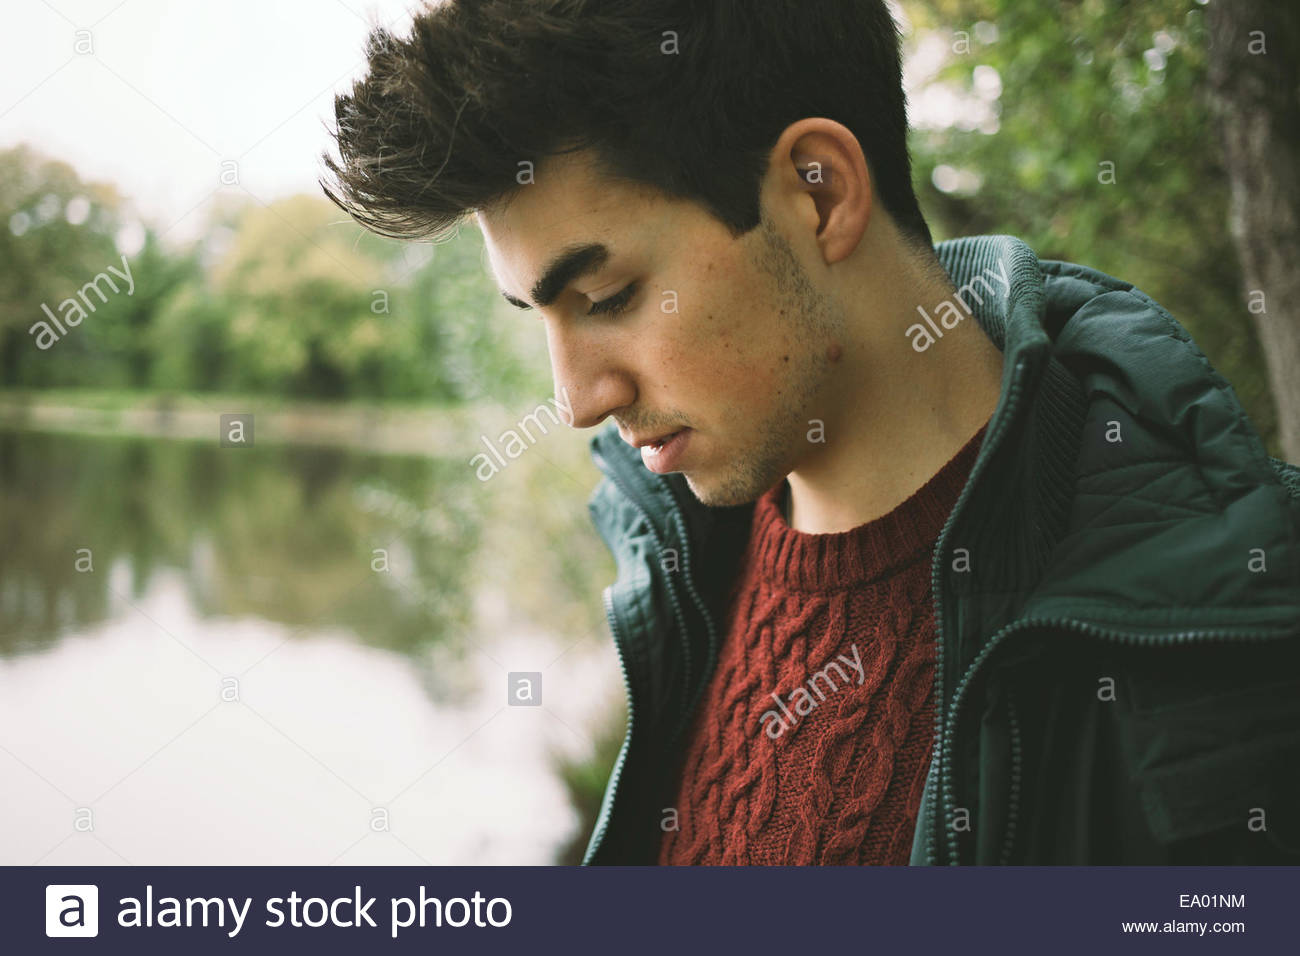 Close up of young man looking down on riverbank Photo Stock